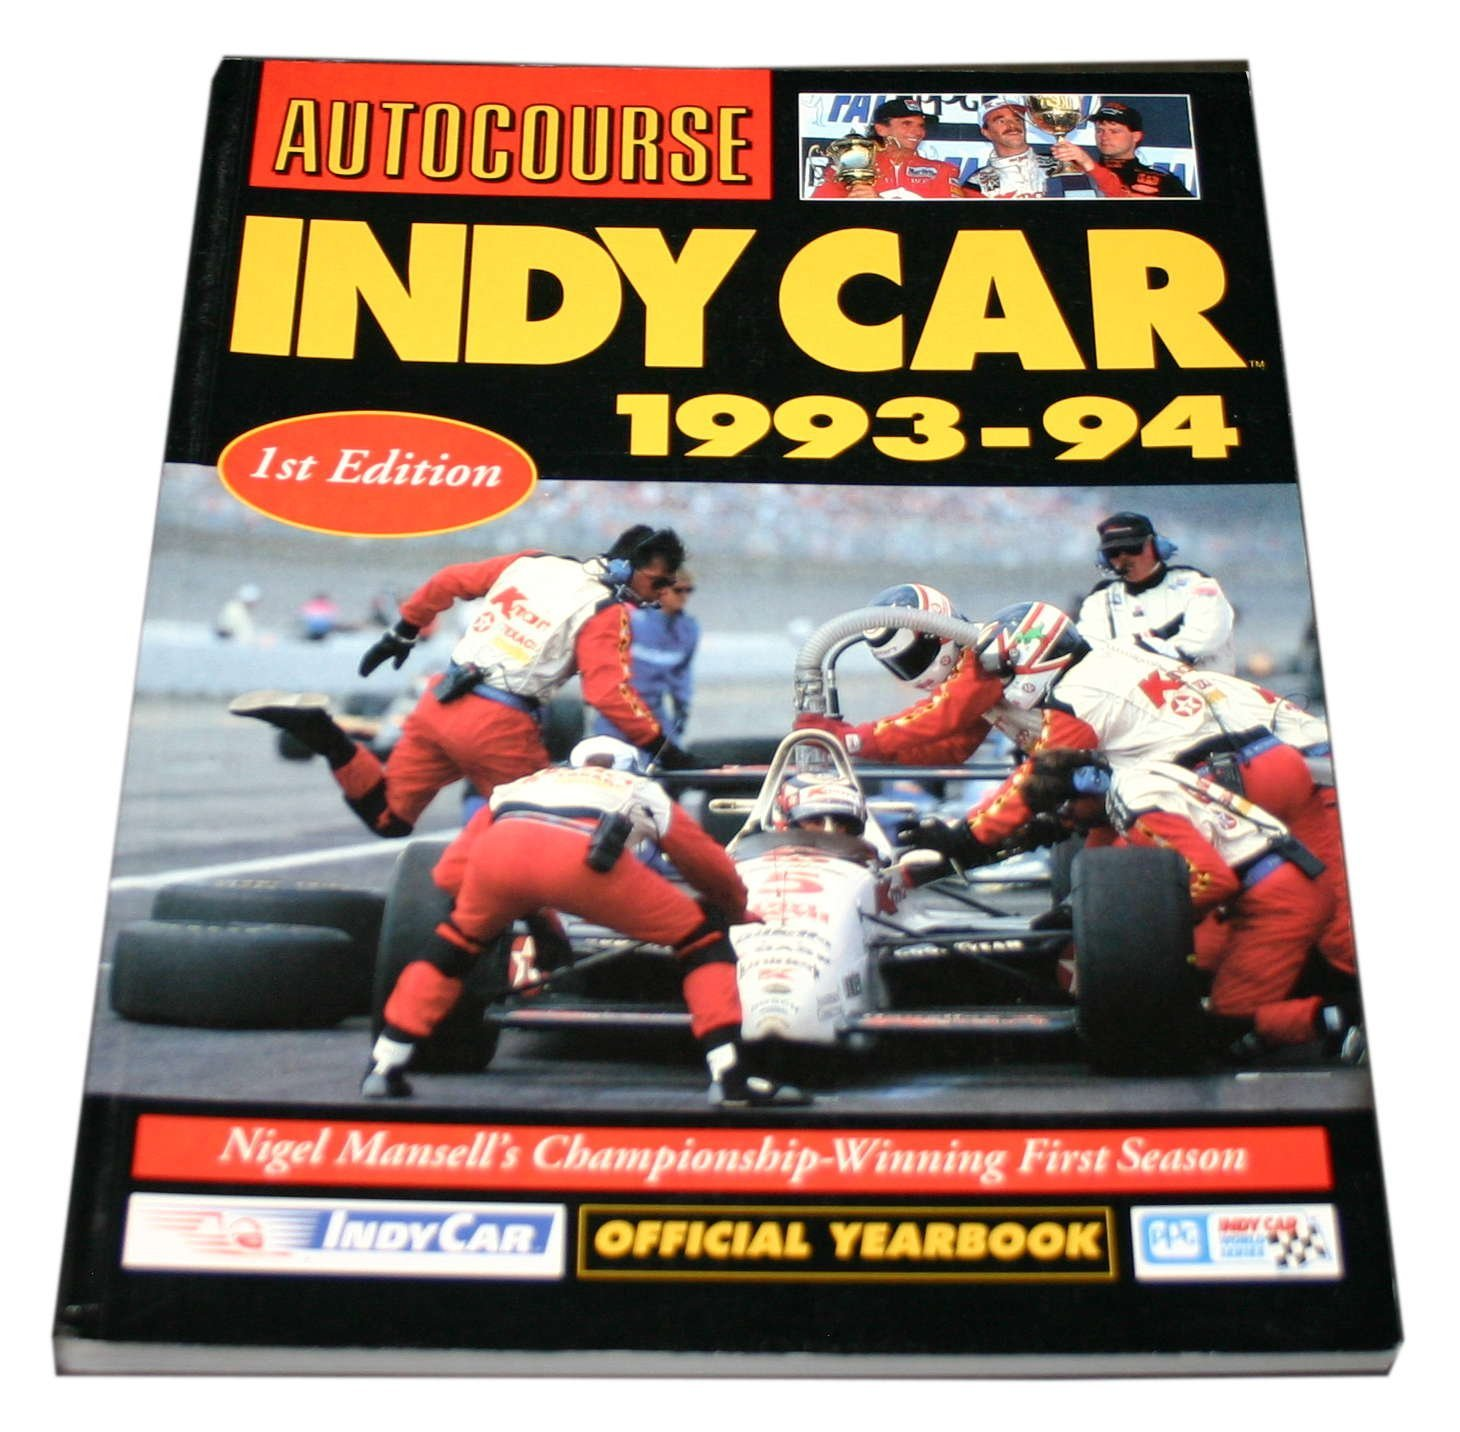 Autocourse Indy Car Yearbook 1993 94 by Jeremy Shaw (Editor) (25 Nov 1993)